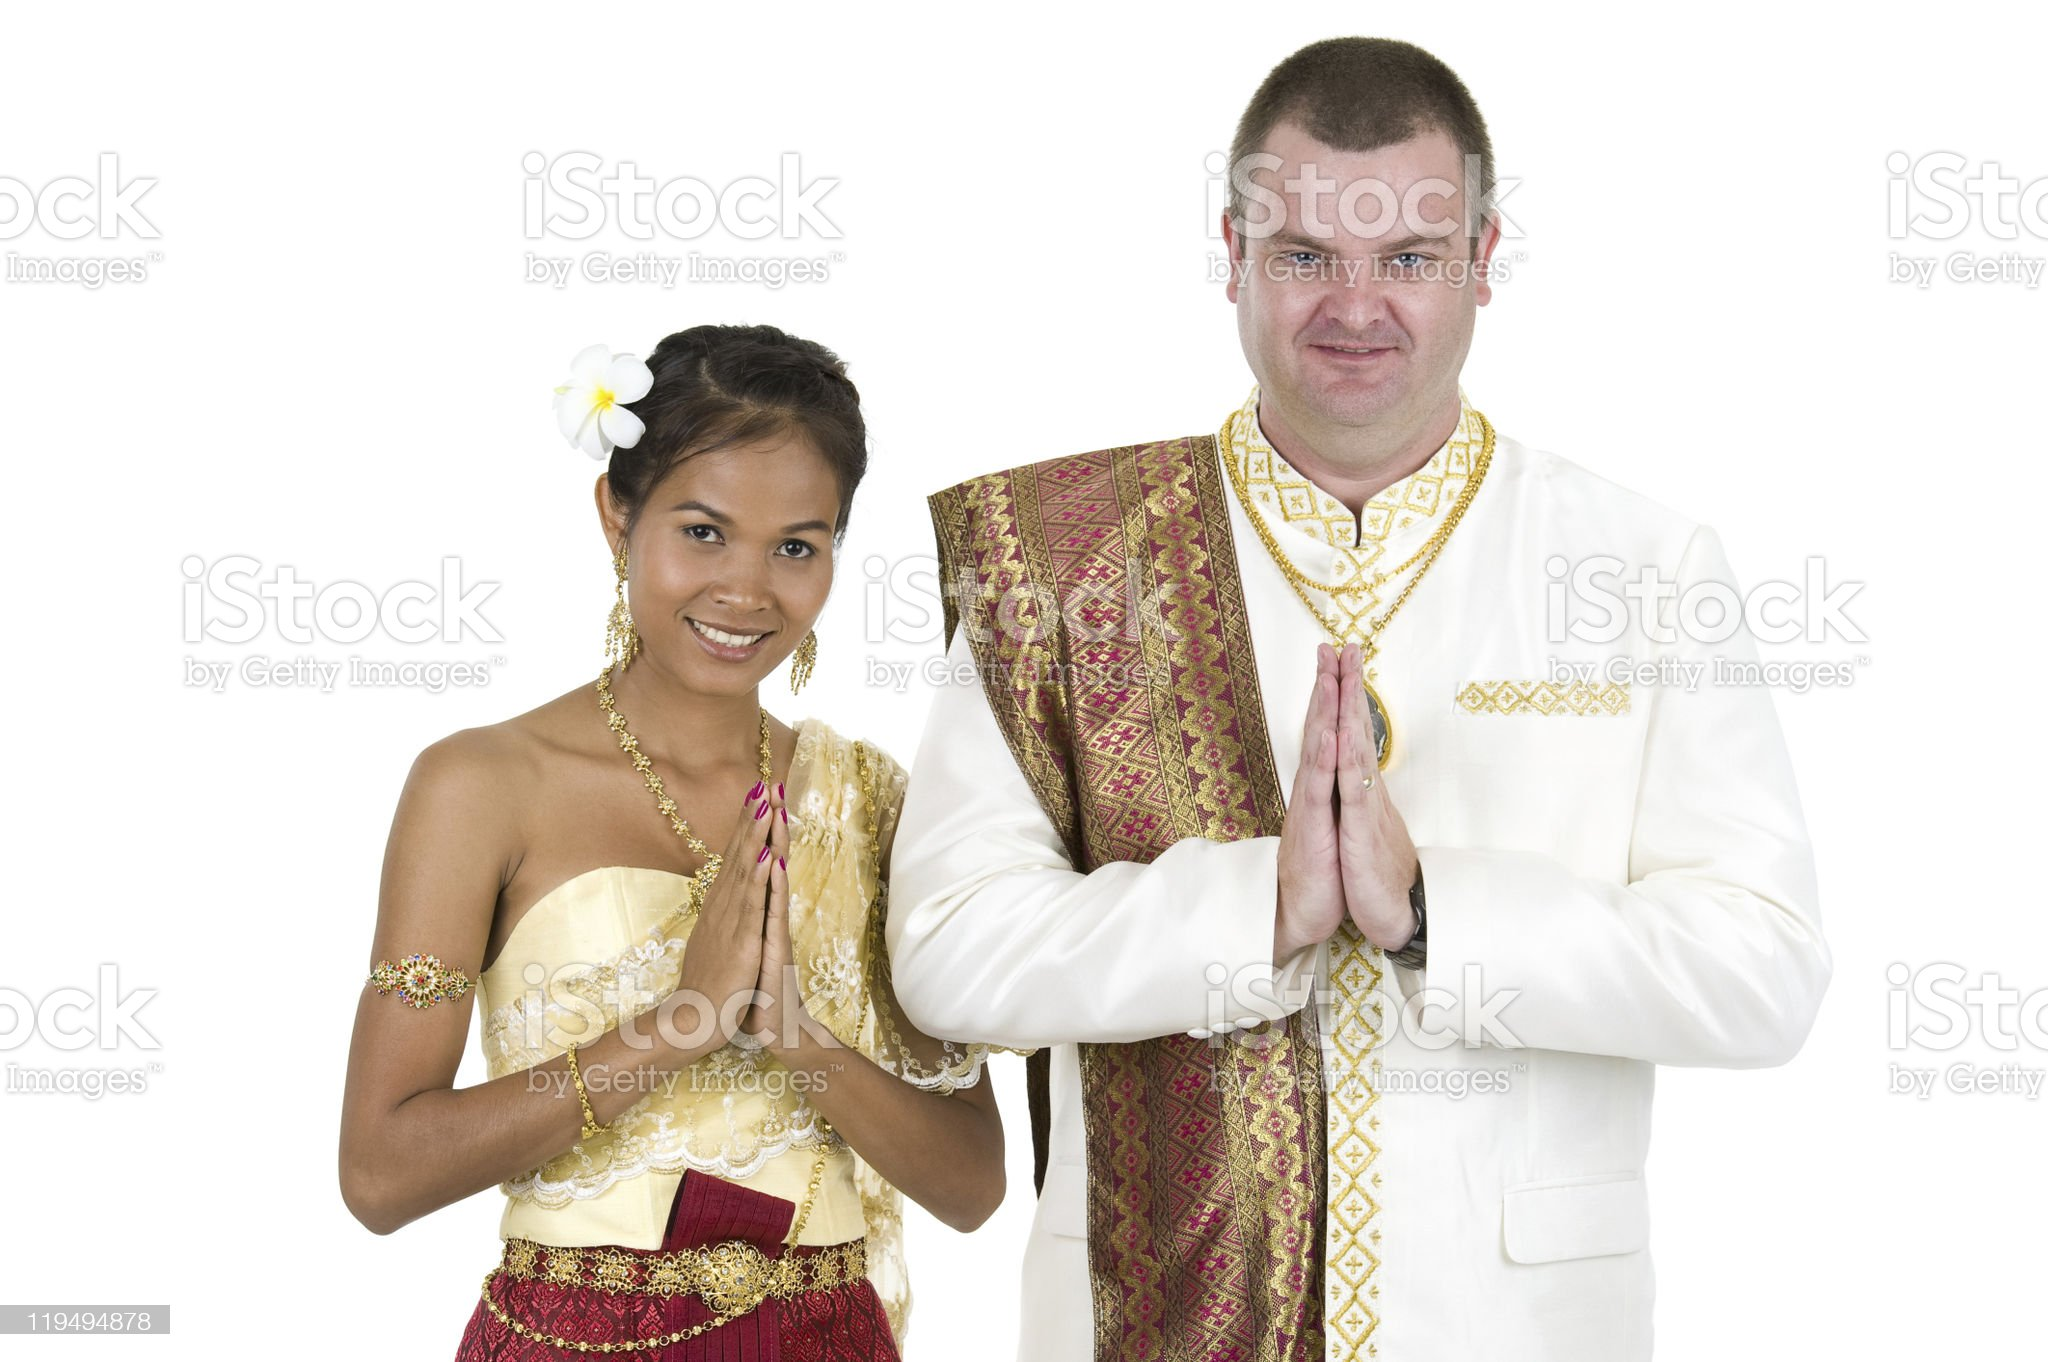 caucasian and asian couple royalty-free stock photo